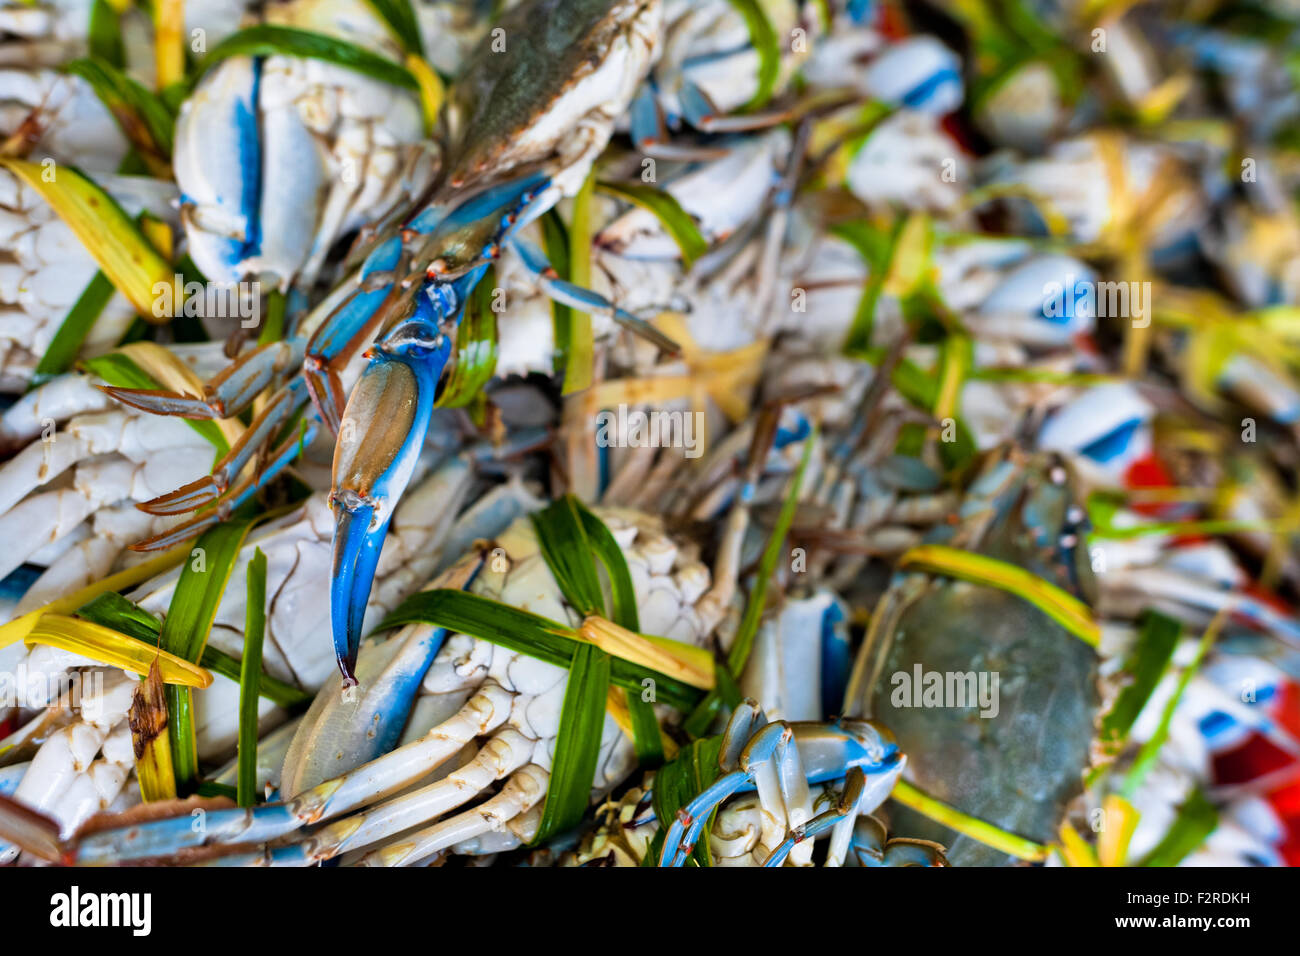 Live blue crabs, tied with palm leaves, are seen for sale at the seafood and fish market in Veracruz, Mexico. Stock Photo